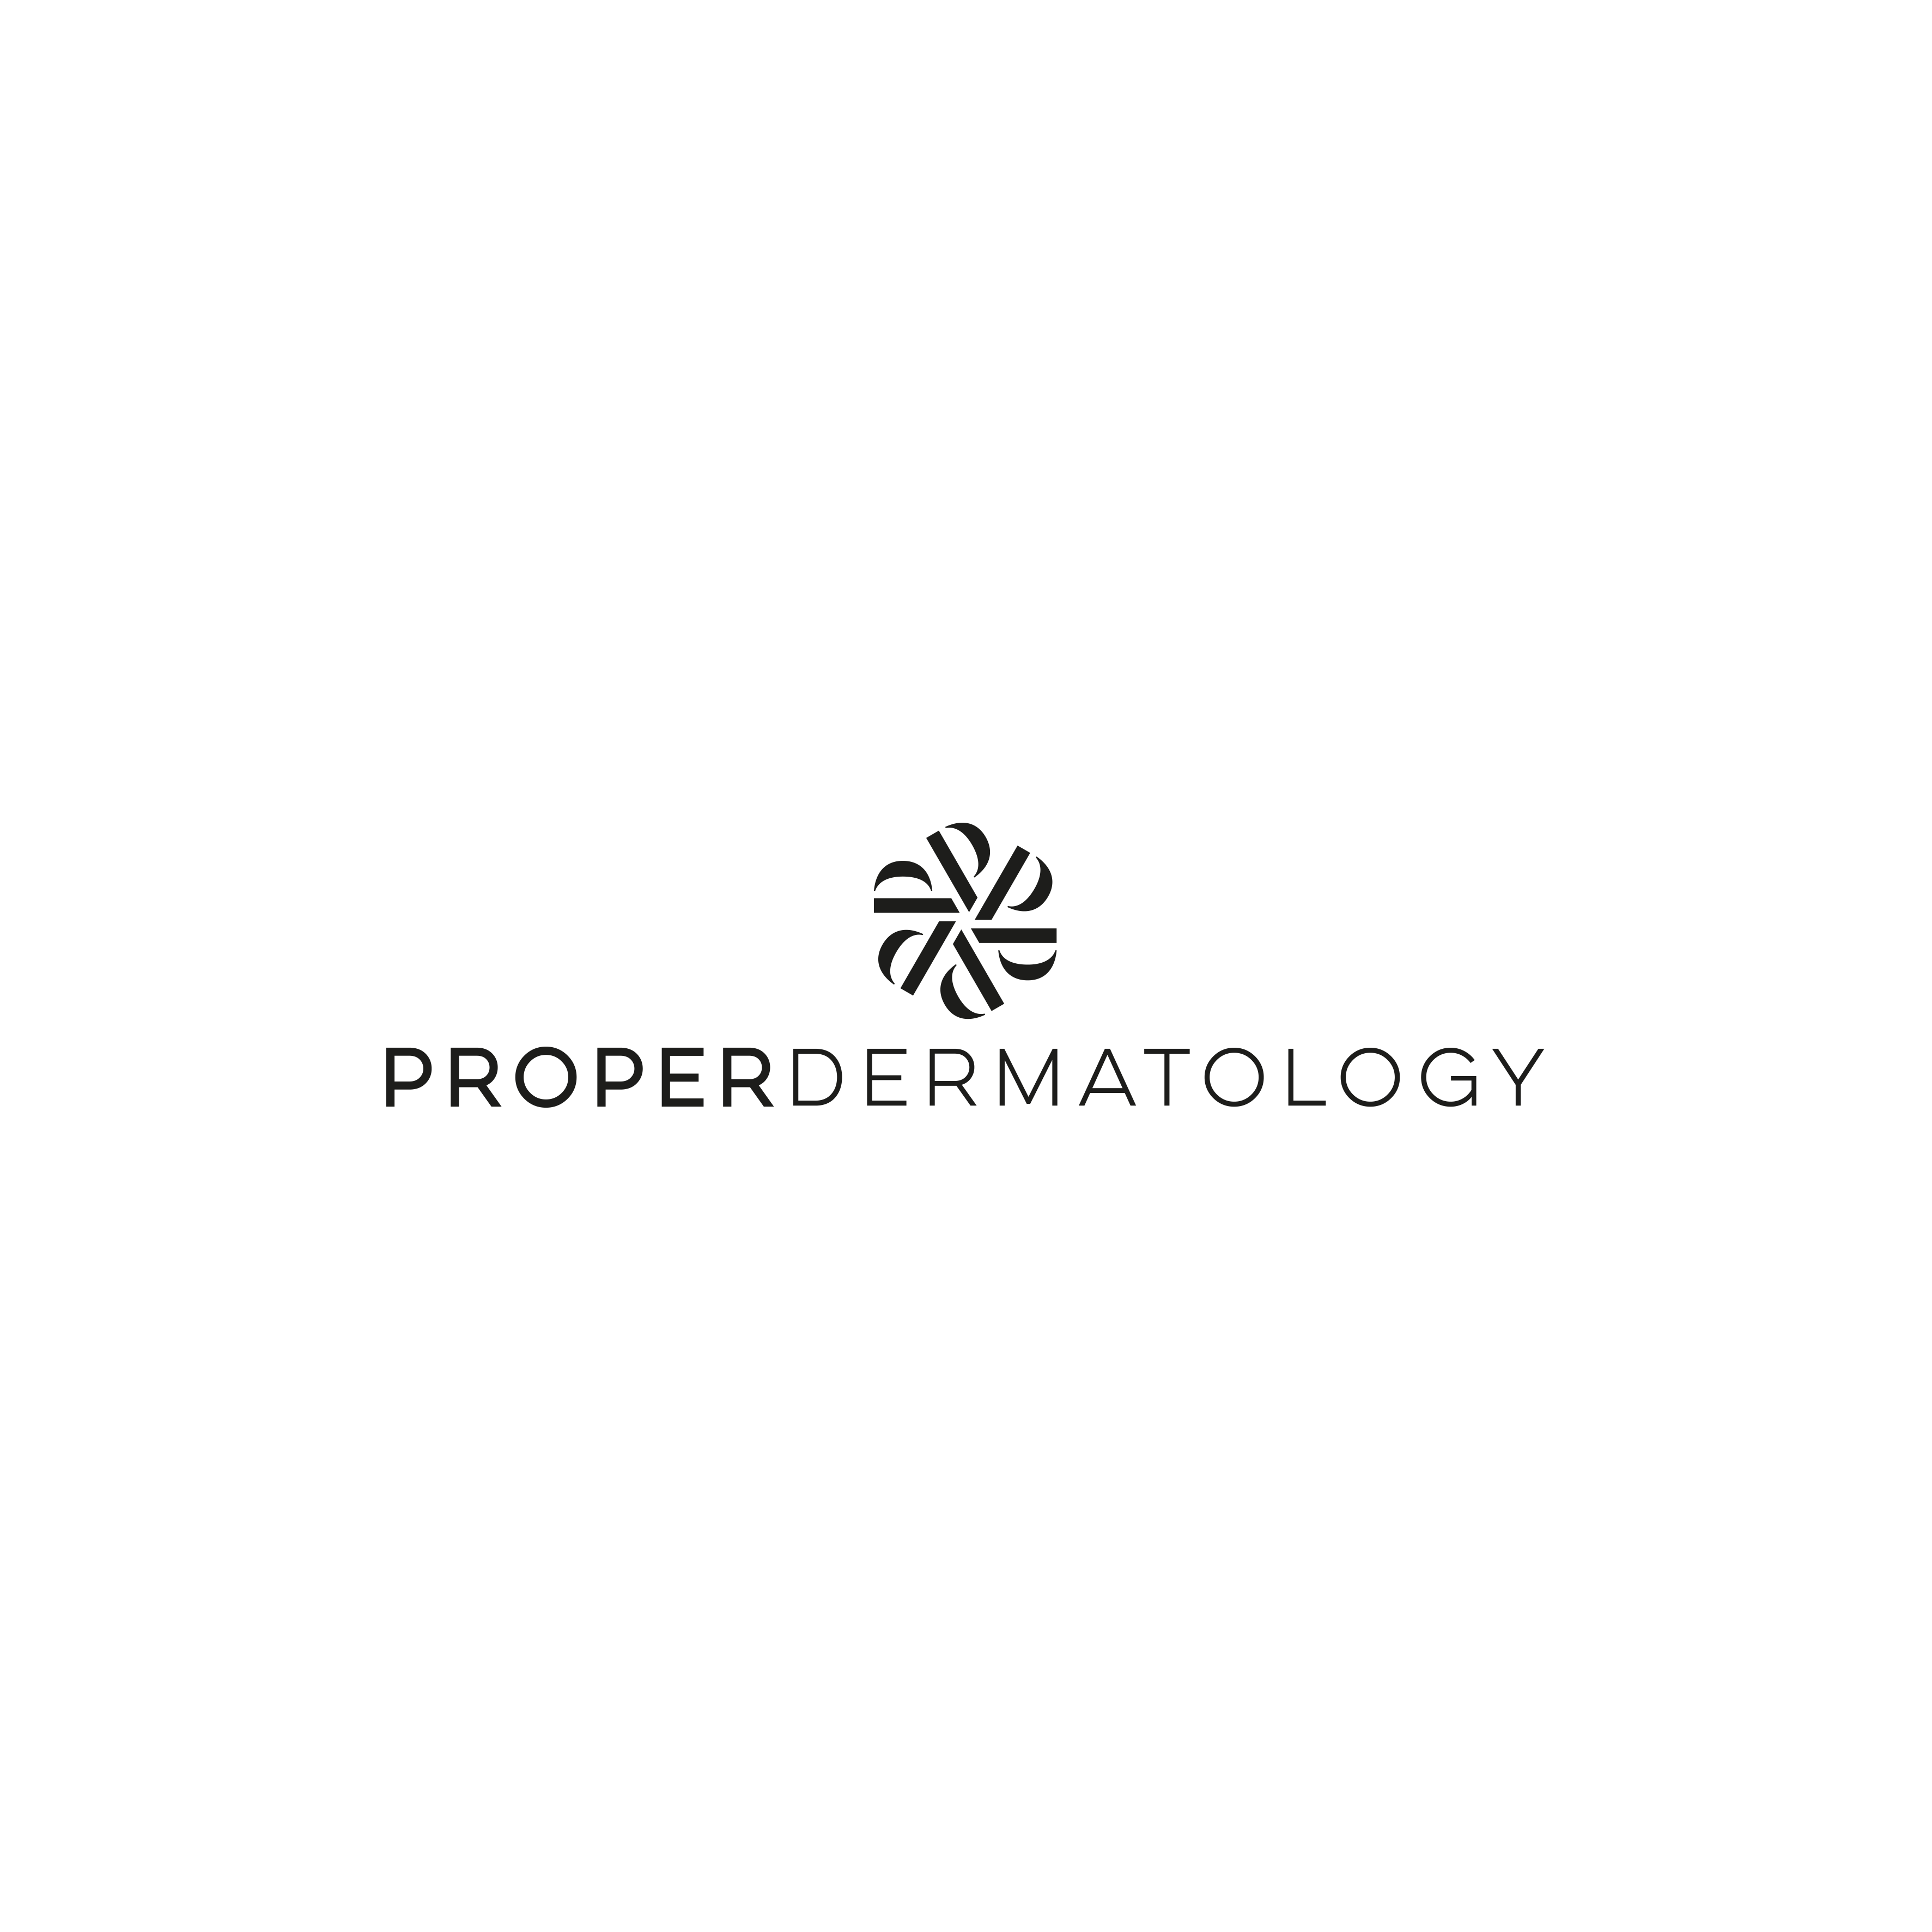 Simple, clean, beautiful logo for new top-tier modern medical and cosmetic Dermatology practice